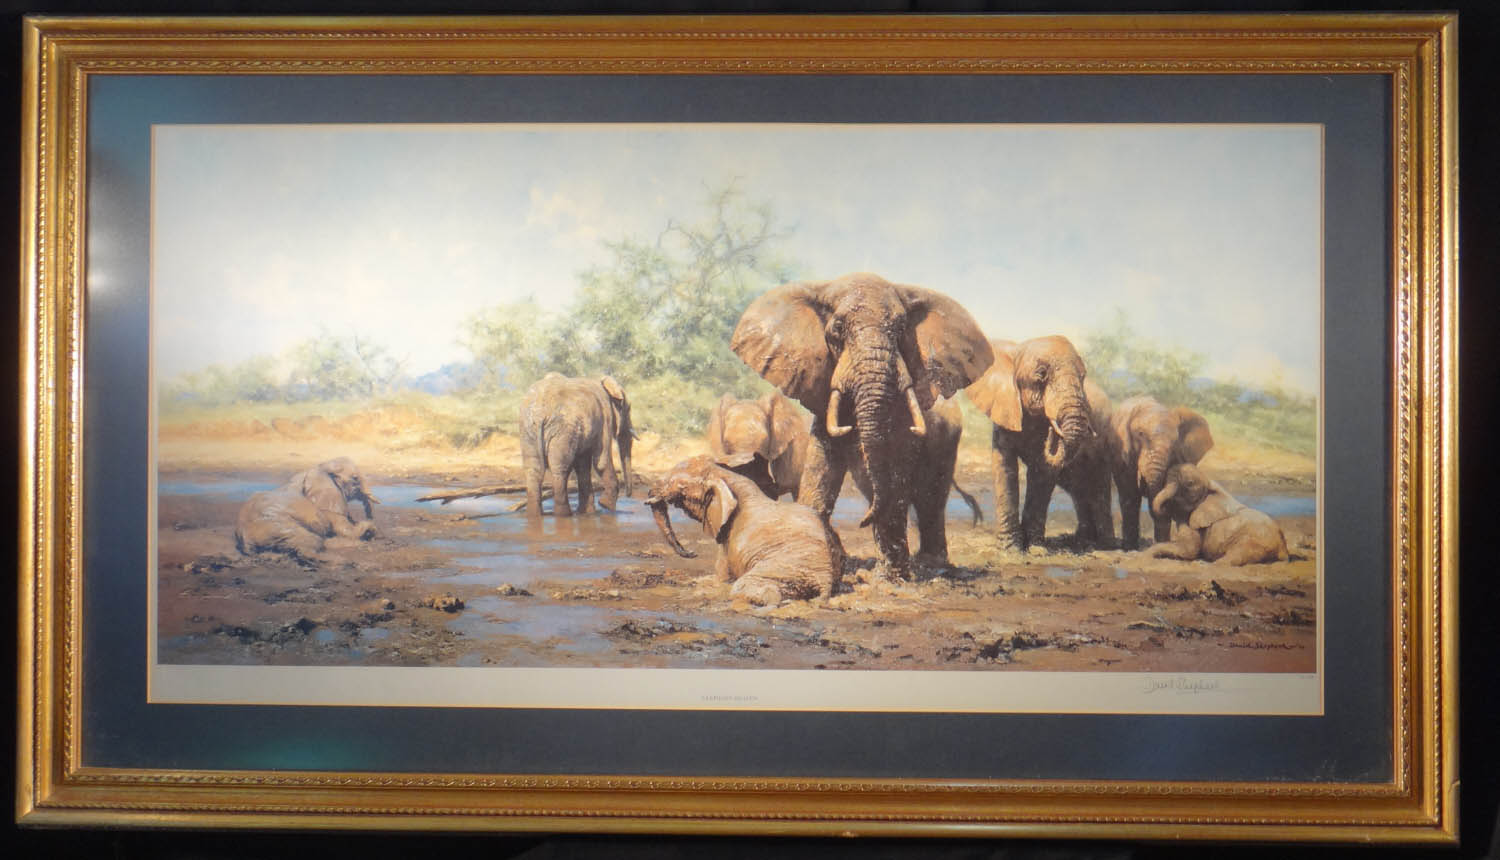 david shepherd signed limited edition print elephant heaven